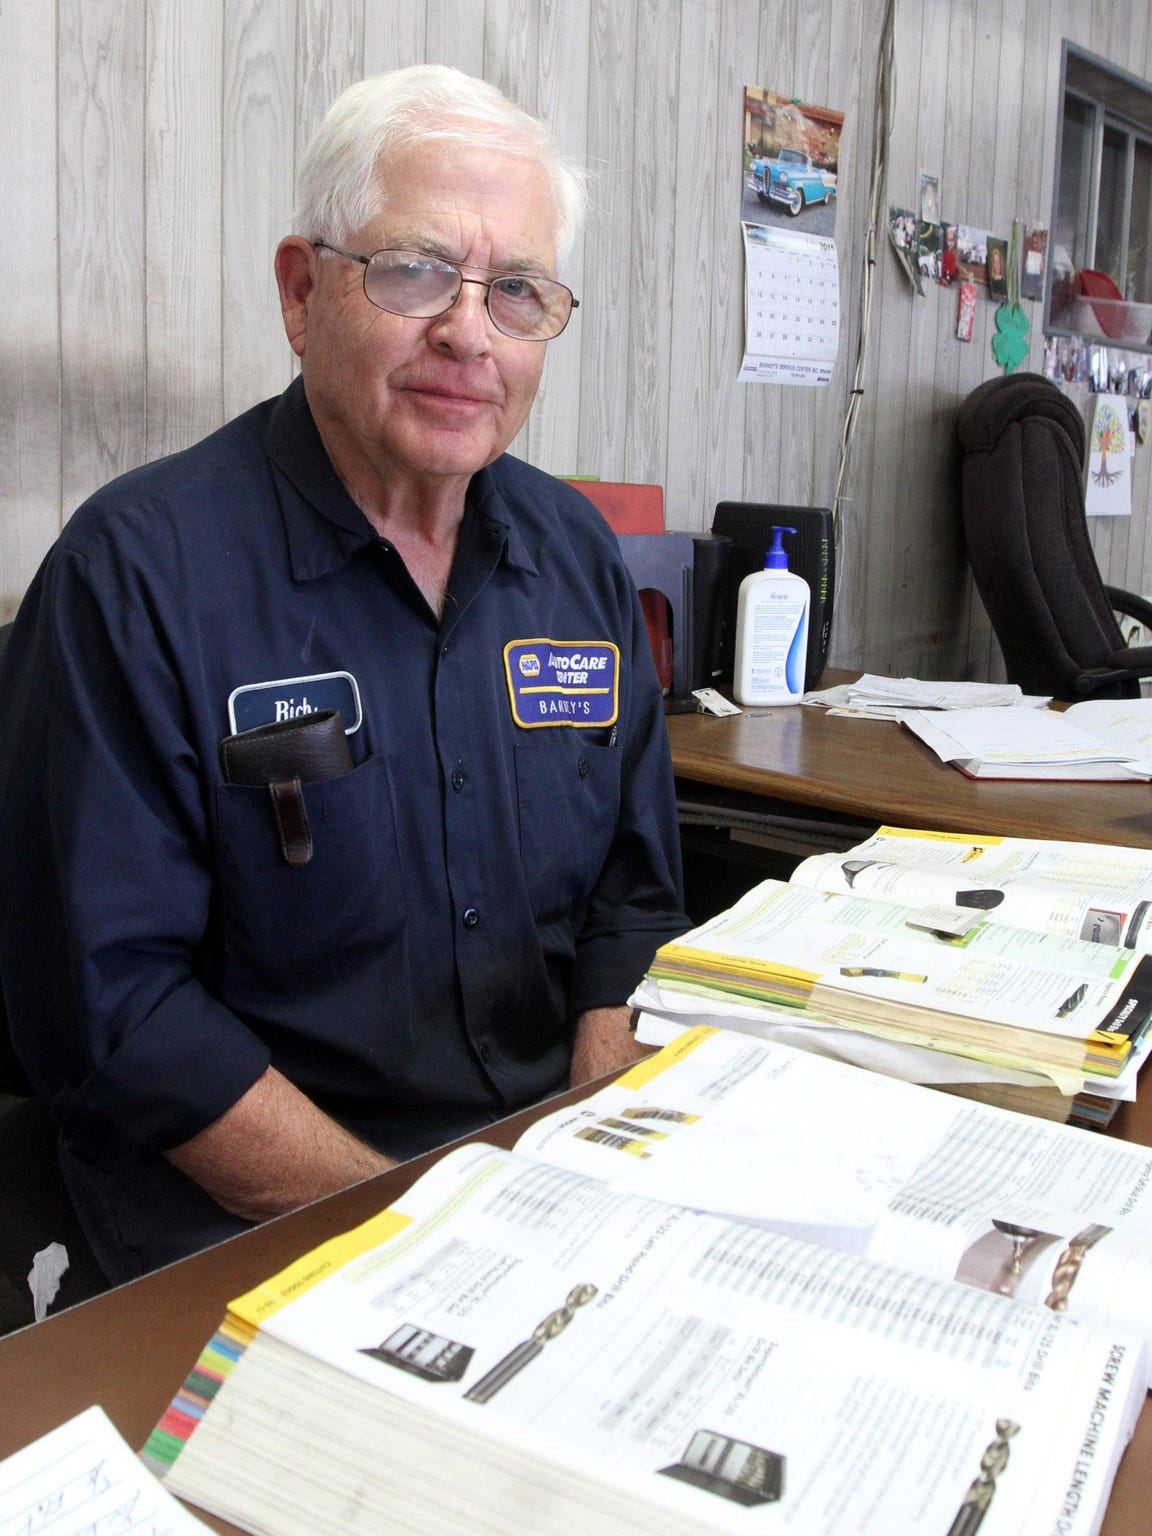 Richard Barney has seen many of the changes in Lakewood